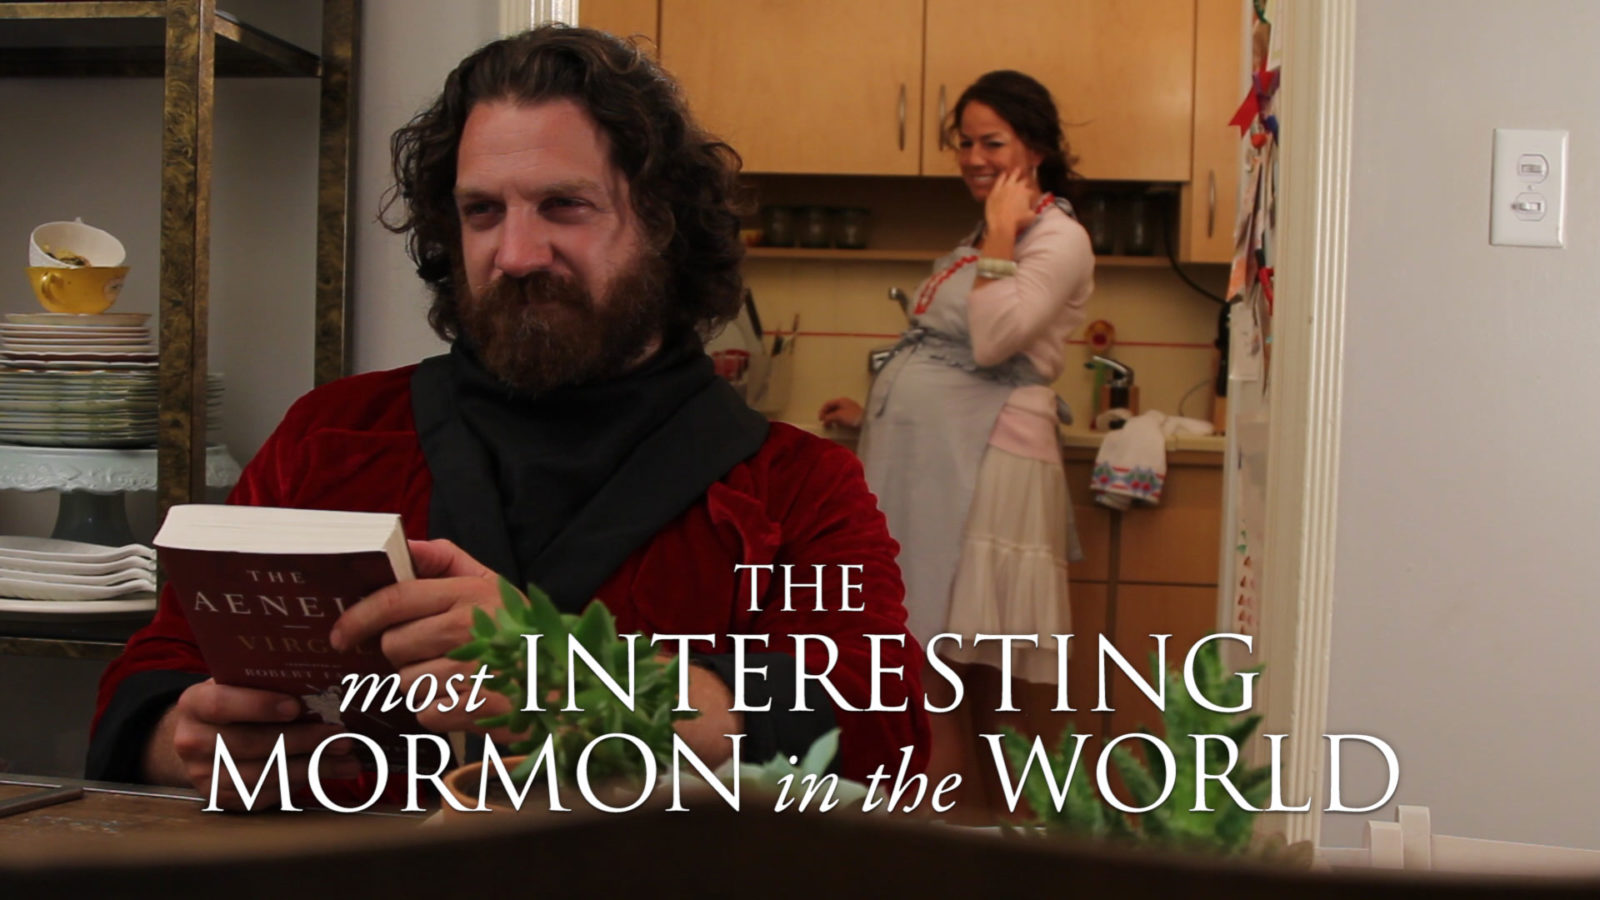 The Most Interesting Mormon in the World